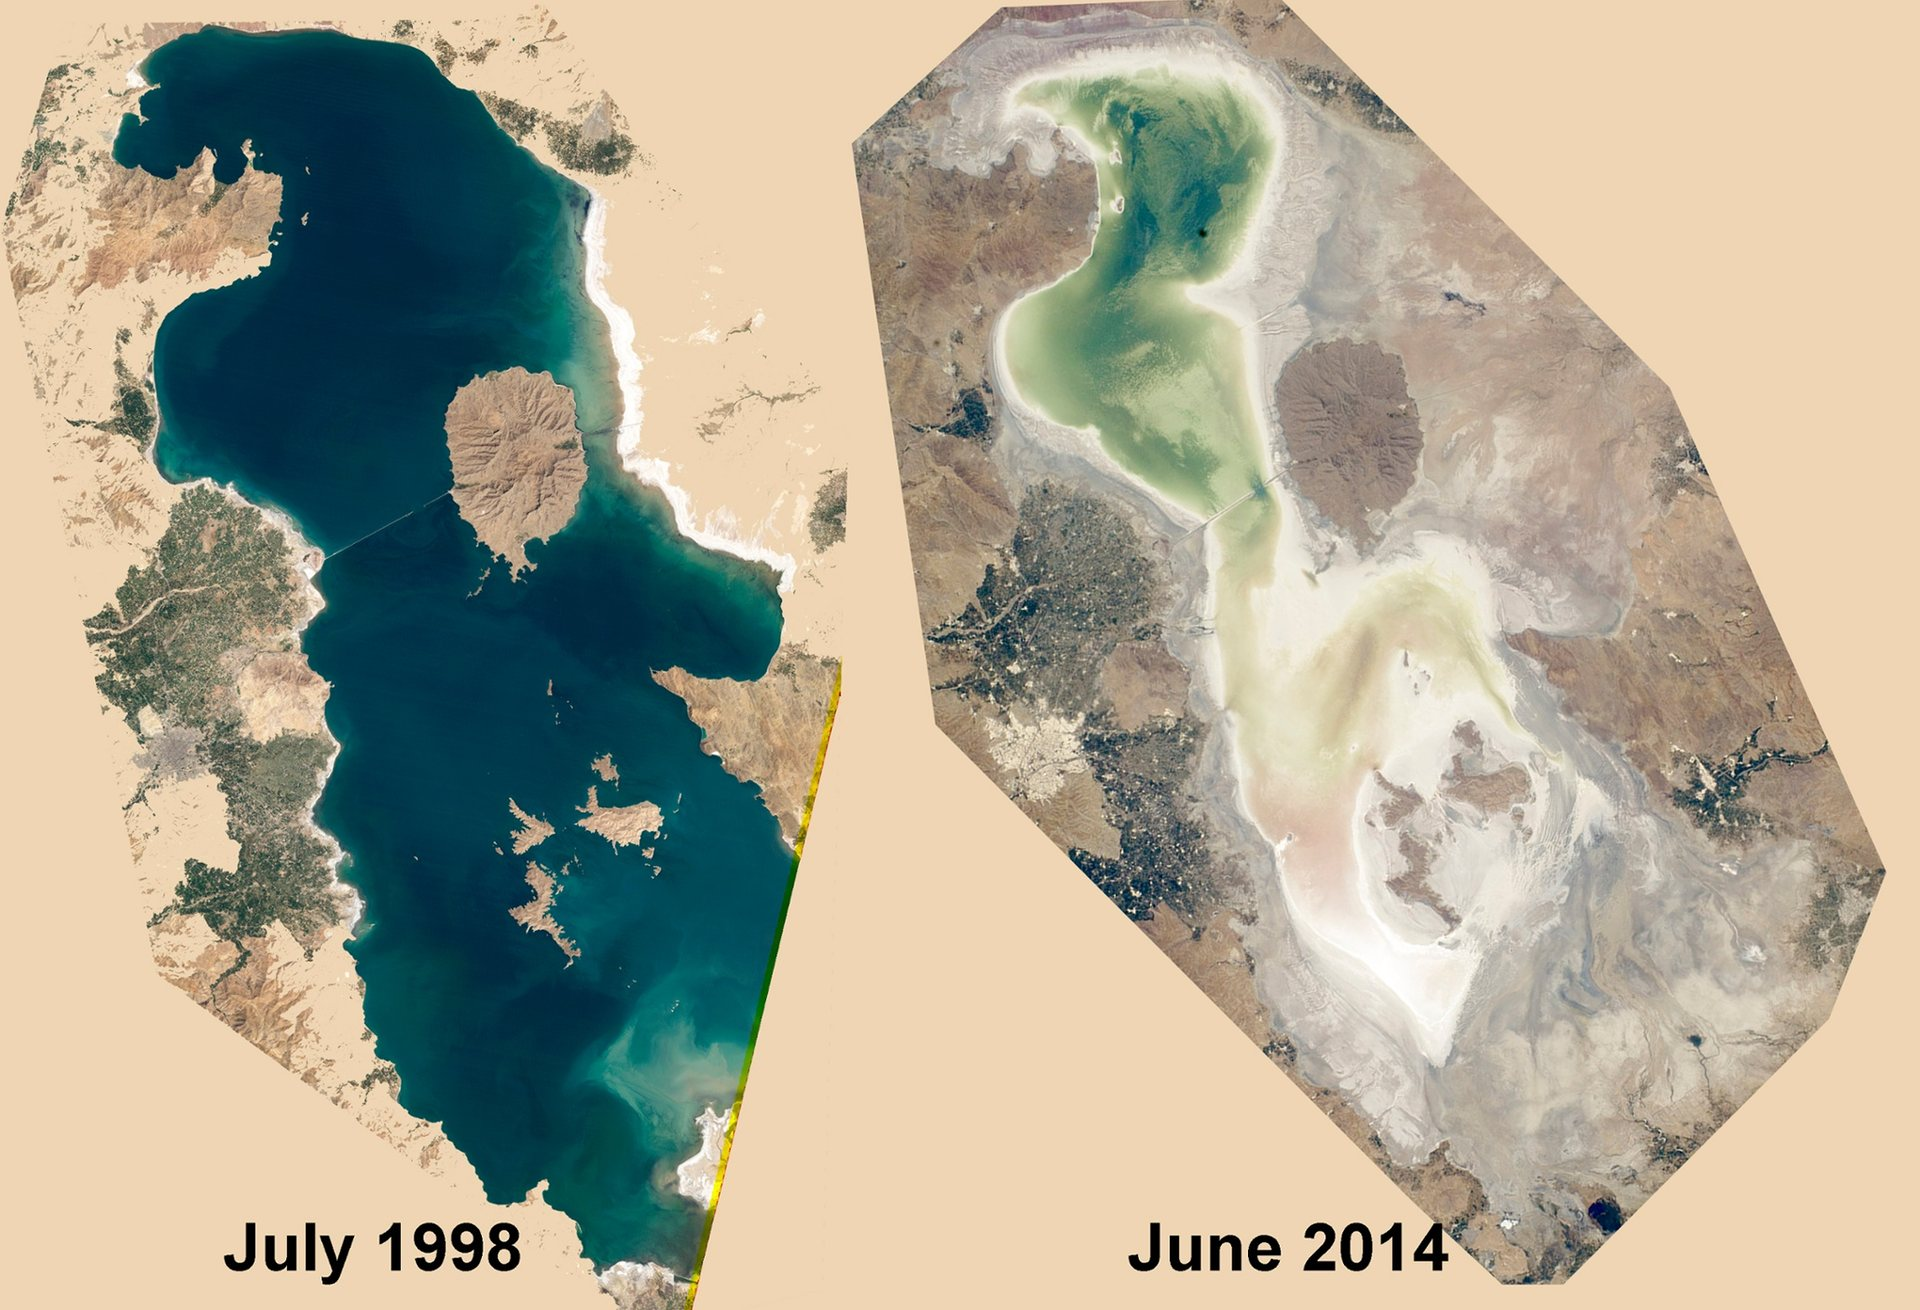 Lake Urmia Photograph: Kaveh Madani. Source: https://www.theguardian.com/world/iran-blog/2015/jan/23/iran-lake-urmia-drying-up-new-research-scientists-urge-action